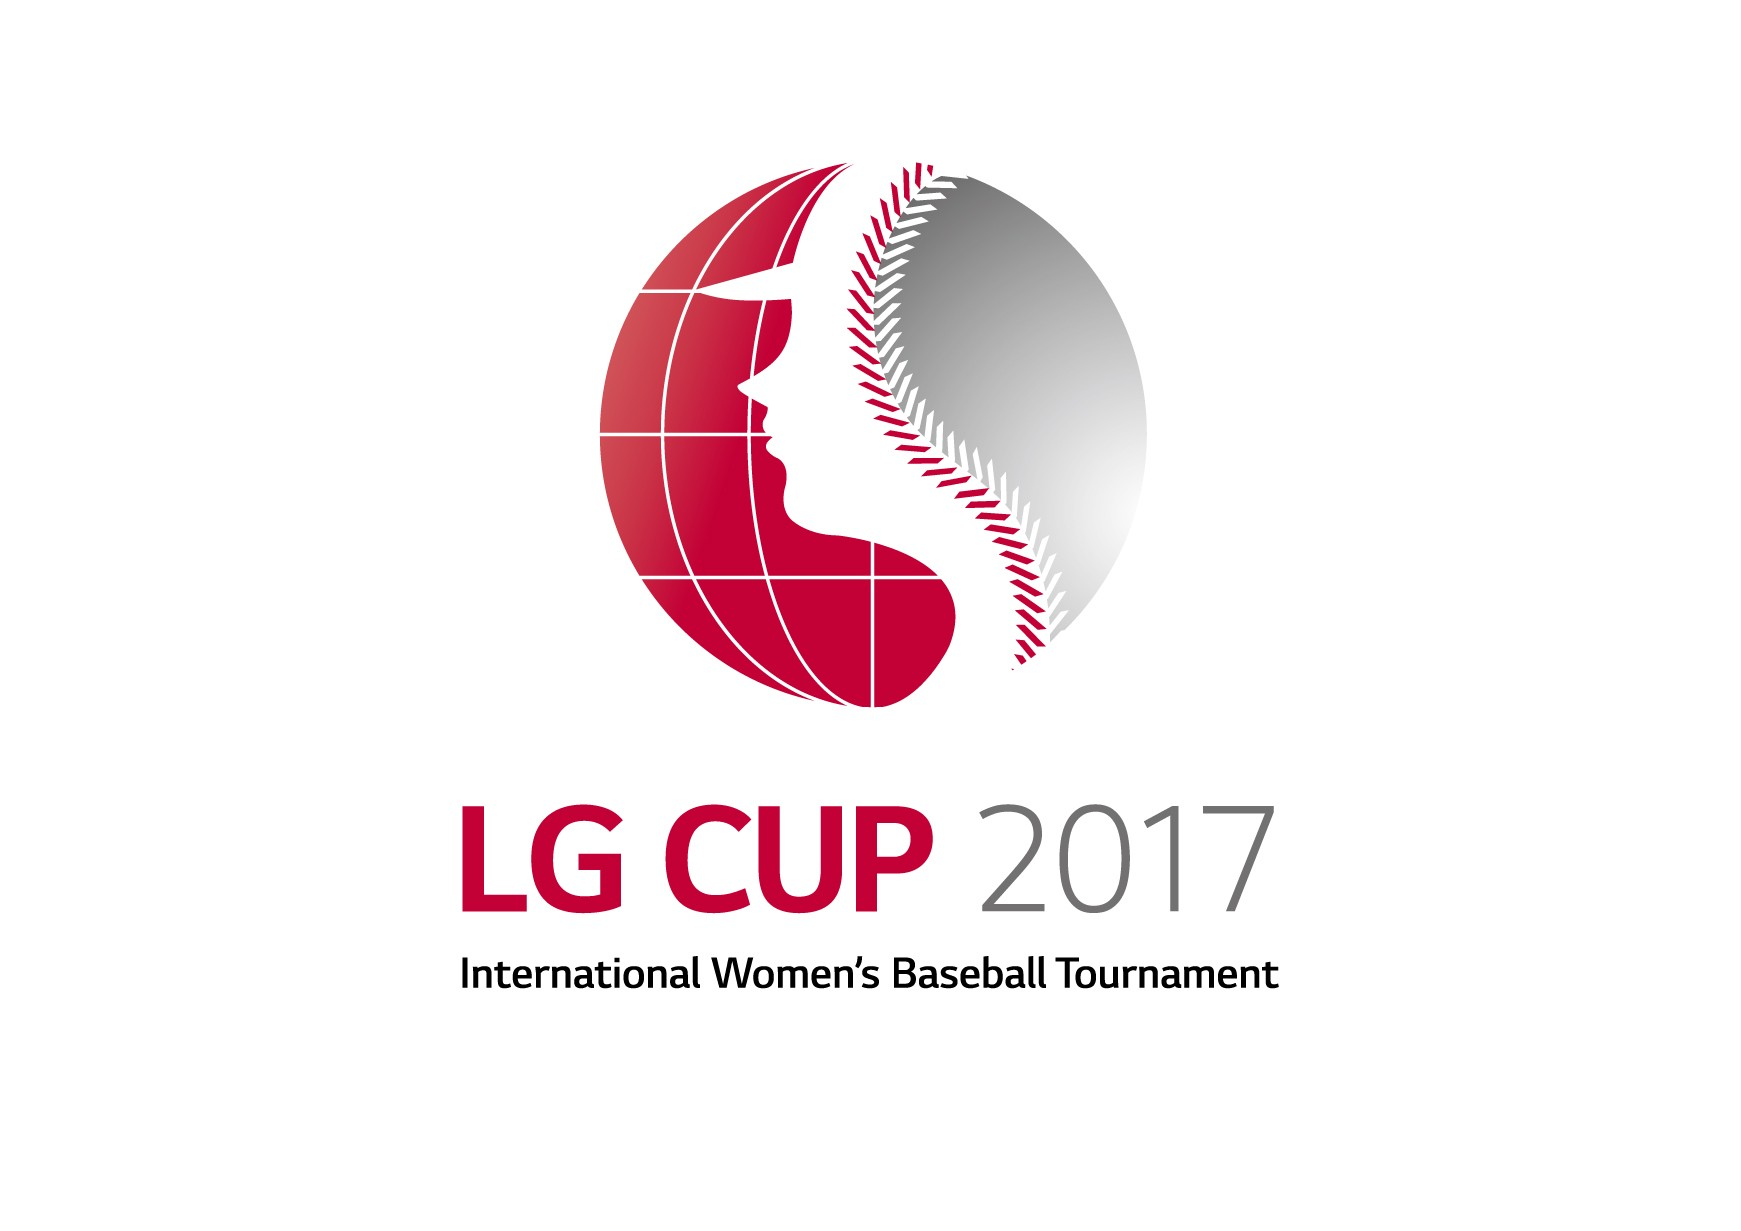 LG CUP 2017 International Women's Baseball Tournament logo